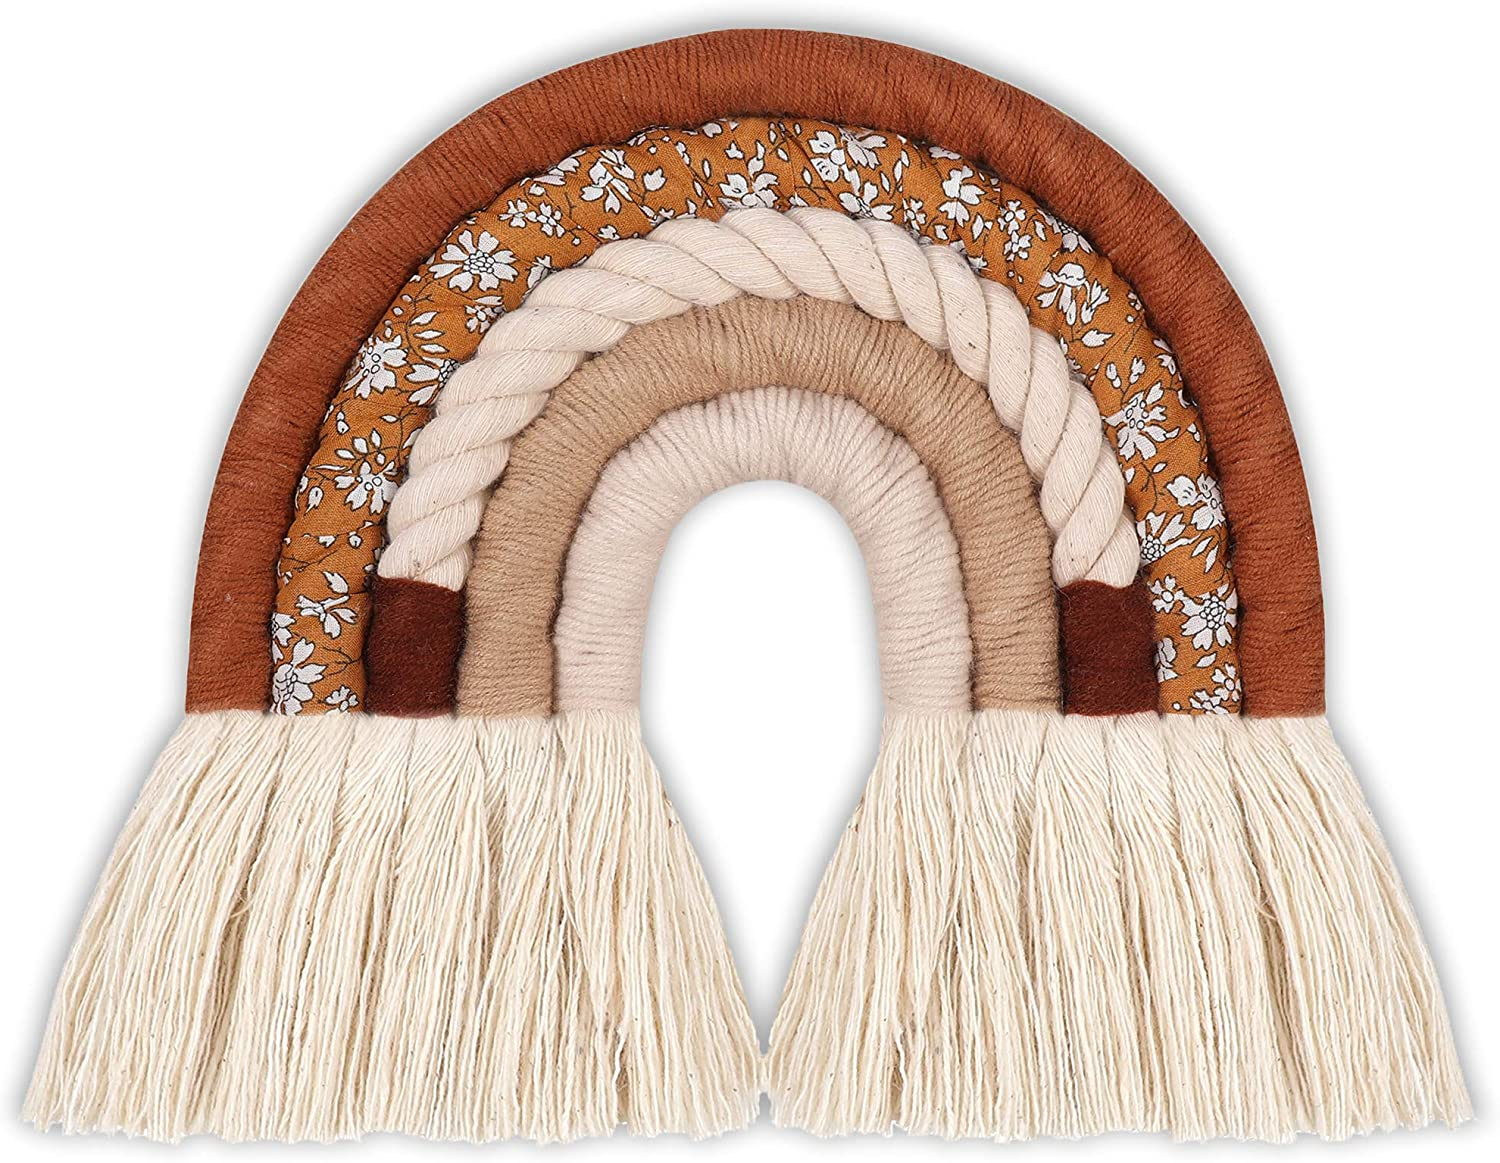 JILPAK Macrame Rainbow Wall Hanging Neutral, Nordic Woven Rainbow Wall Hanging, Rainbow Boho Decor for Wall Room Home Nursery Baby Room, Brown Figured Cloth, 7.5 x 7.9 inches